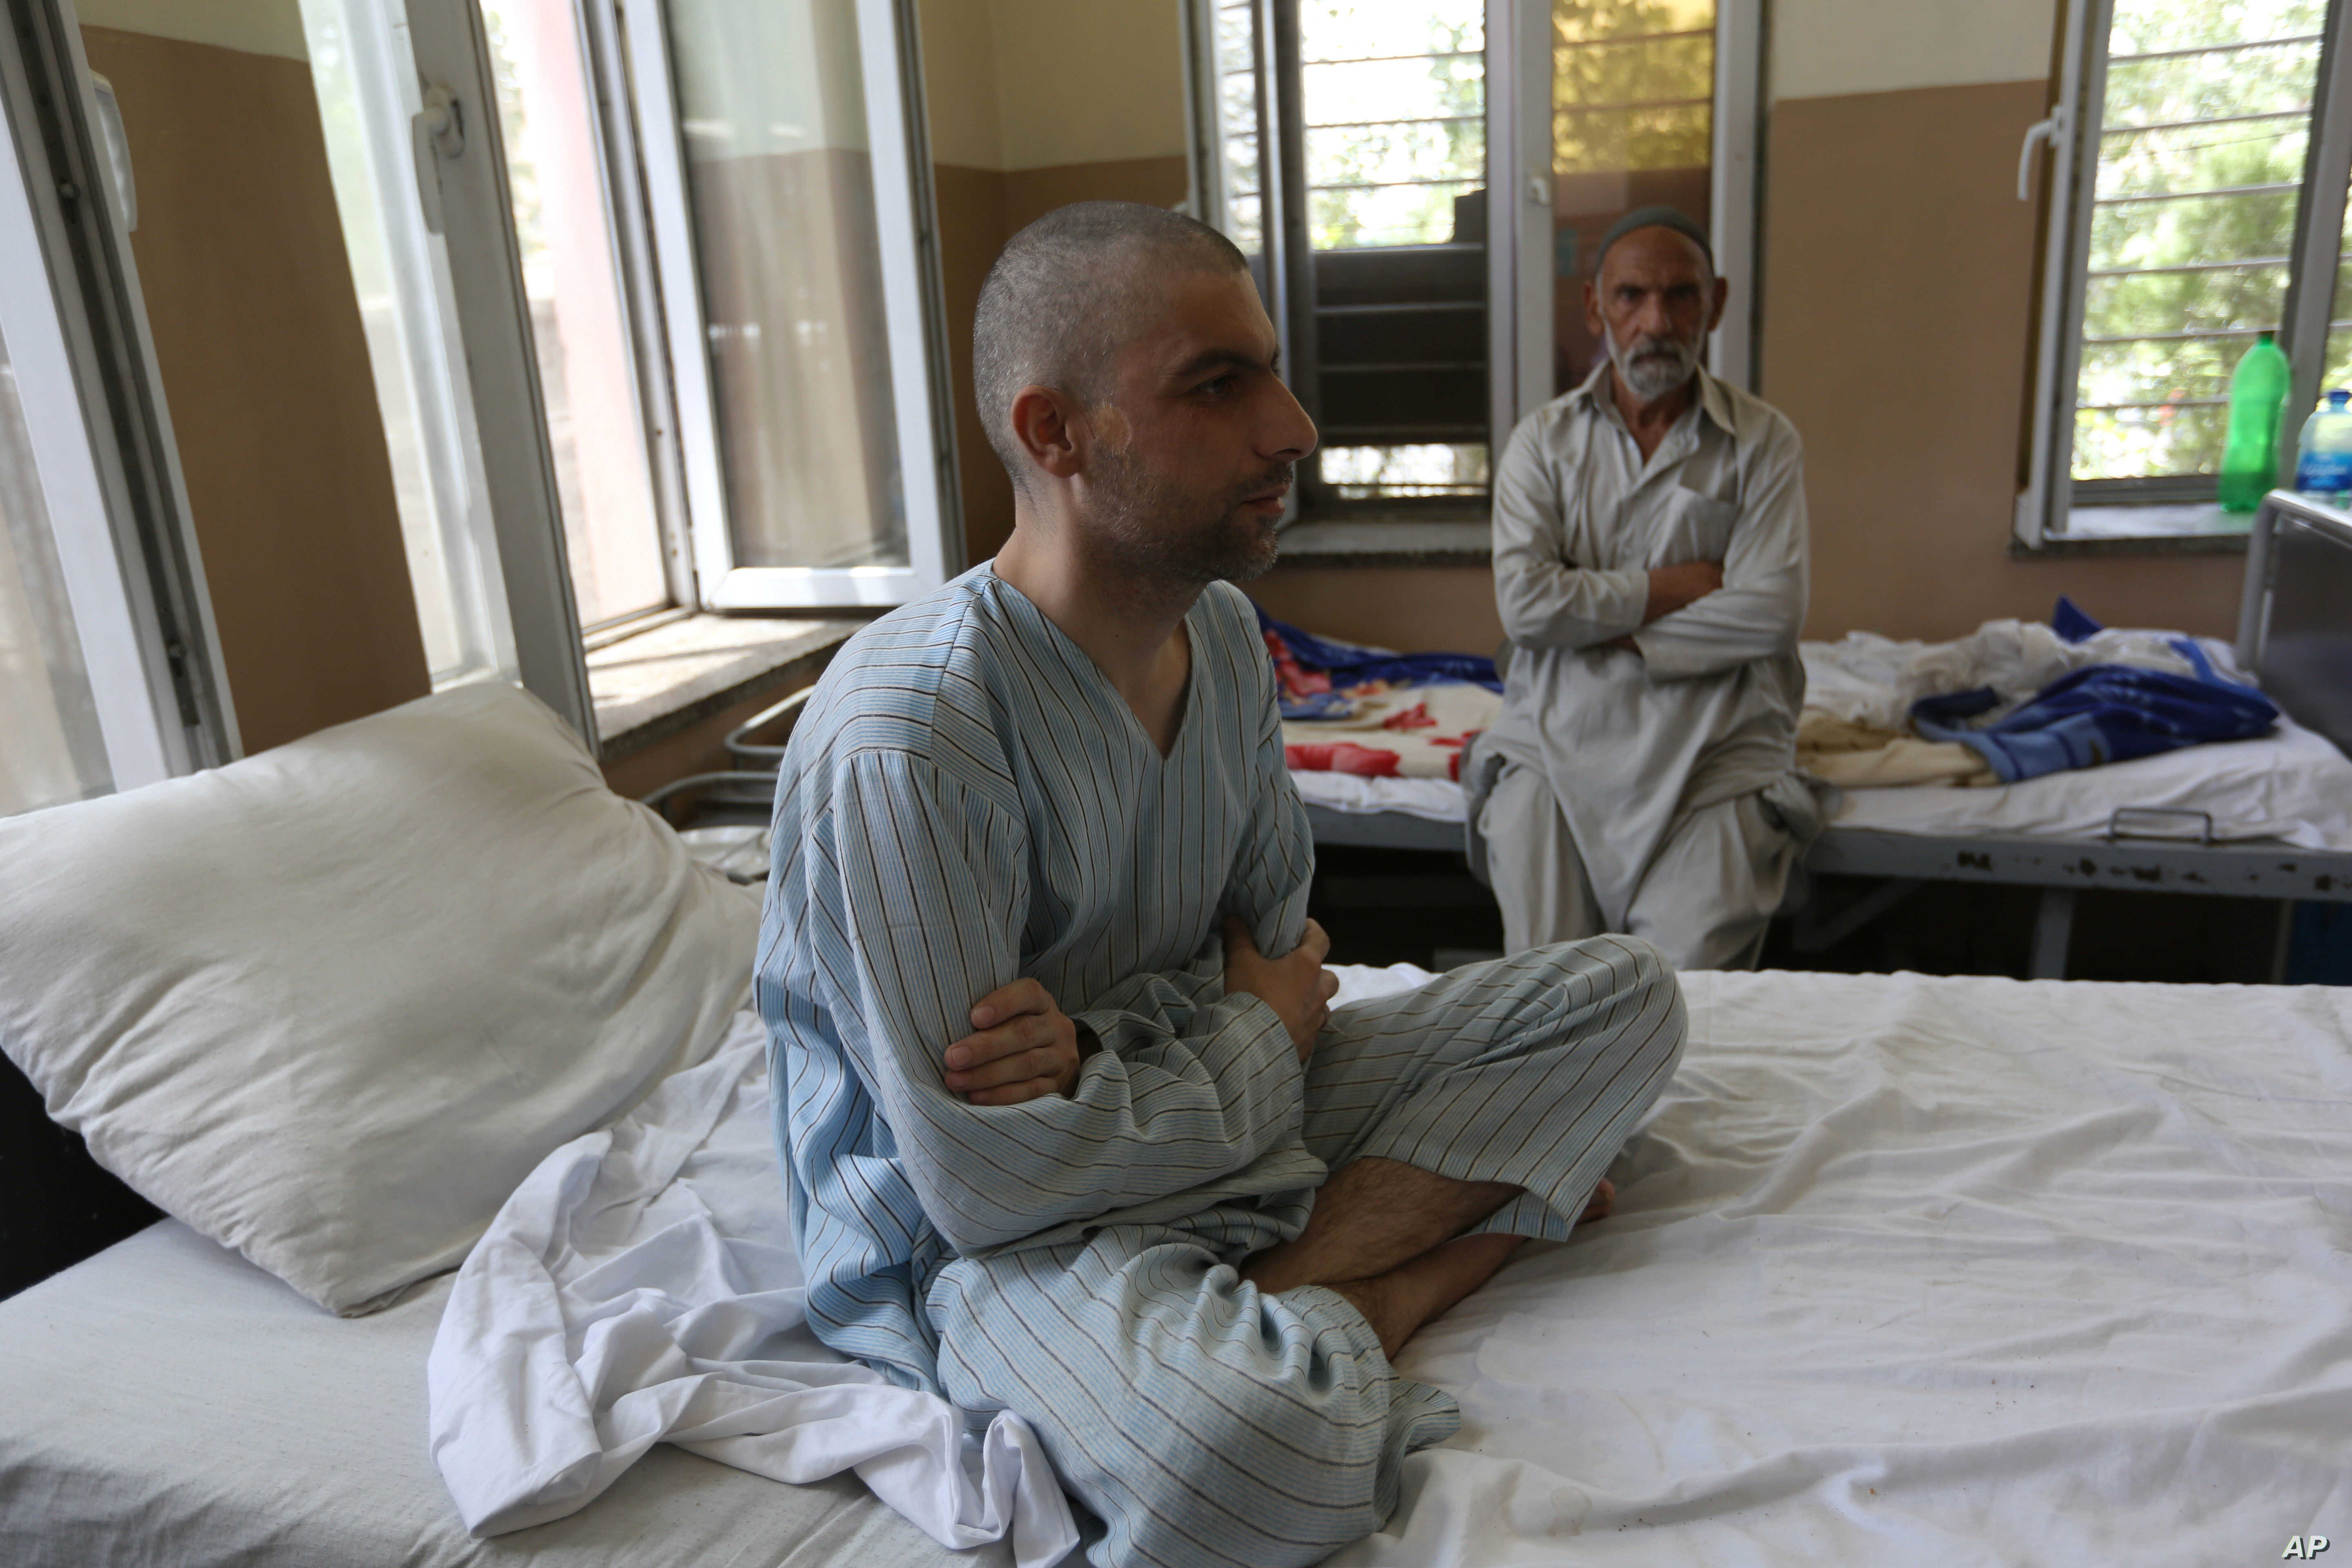 Patients are treated in the Mental Health and Drug Addicts' Hospital in Kabul, Afghanistan, July 17, 2016.